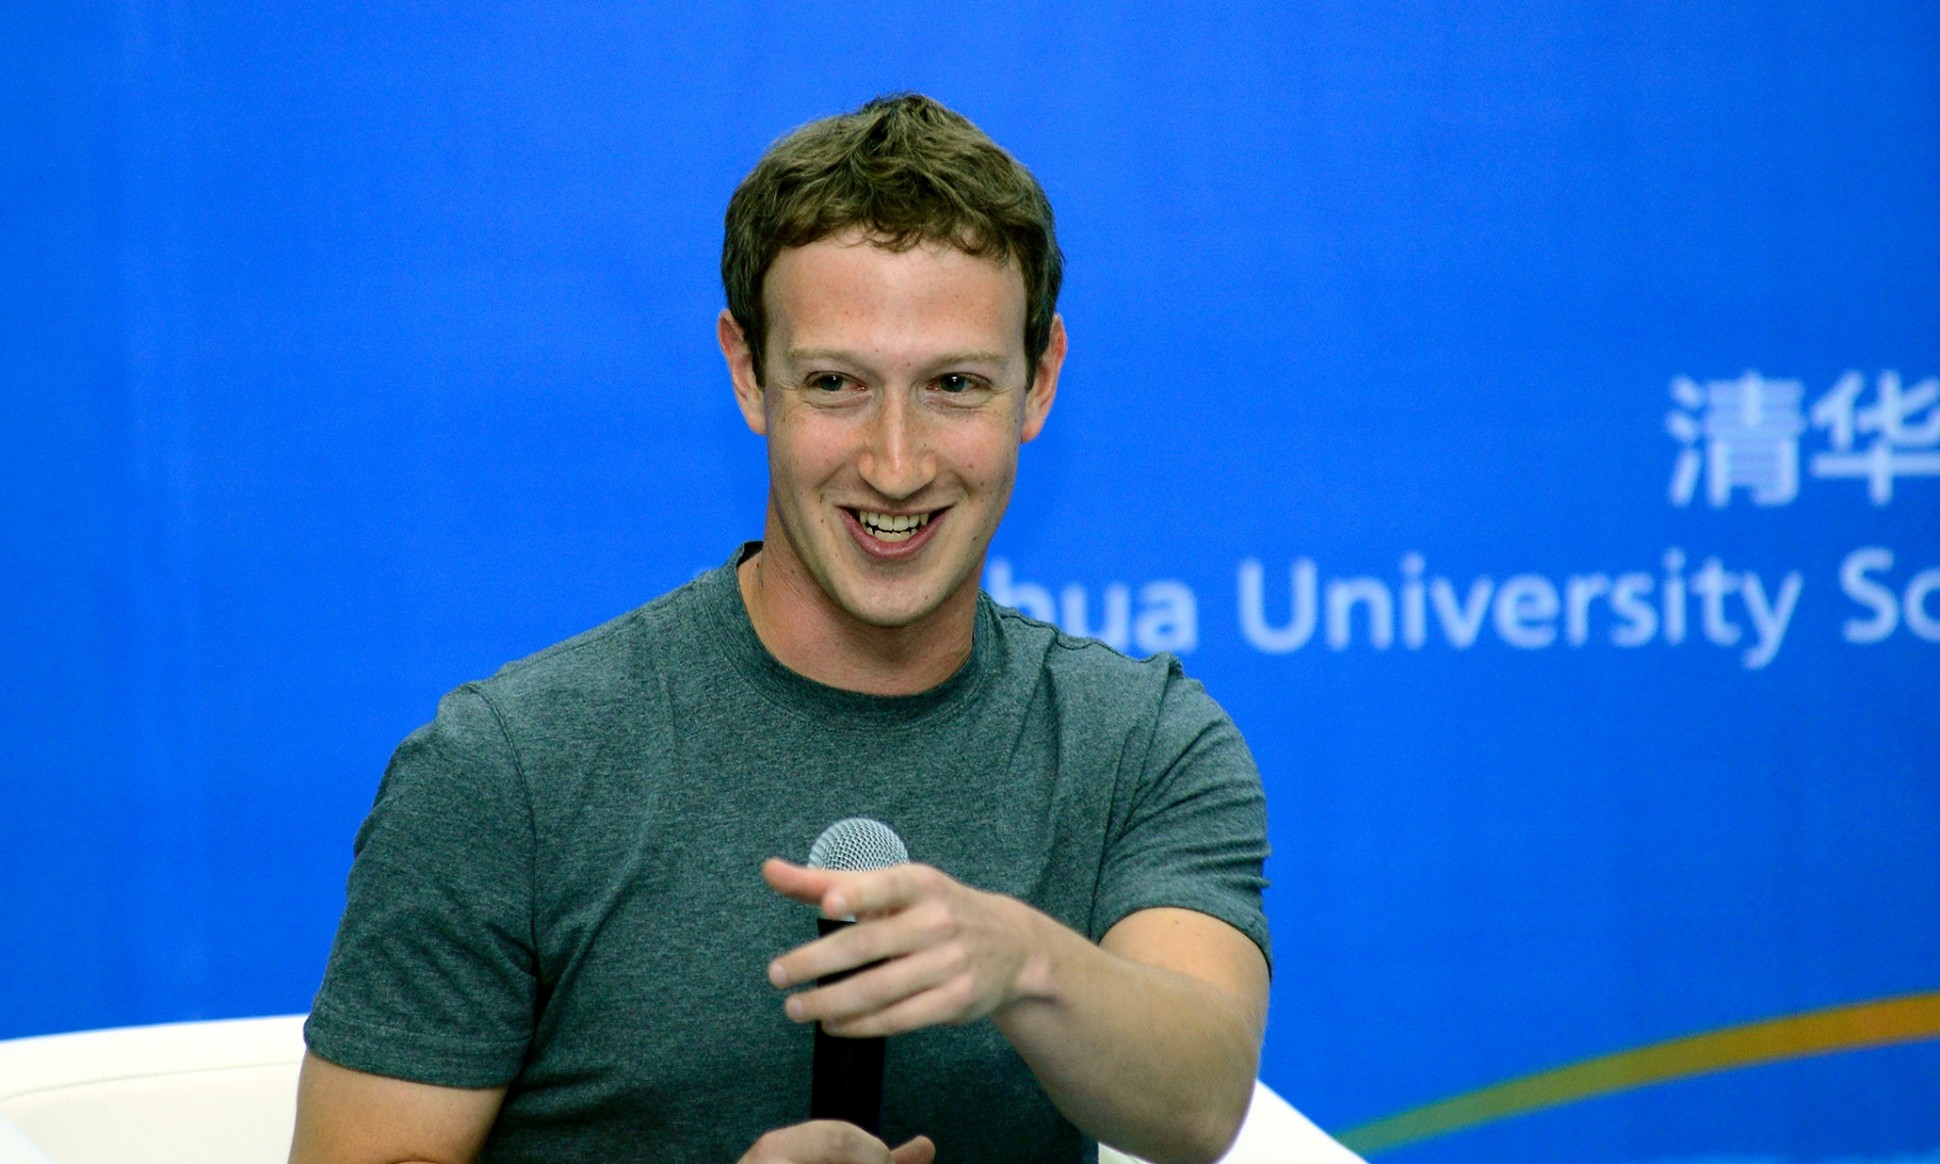 Mark Zuckerberg answers questions at a Q and A session at Tsinghua University, Beijing. (Credit: Tsinghua University/AFP/Getty Images)